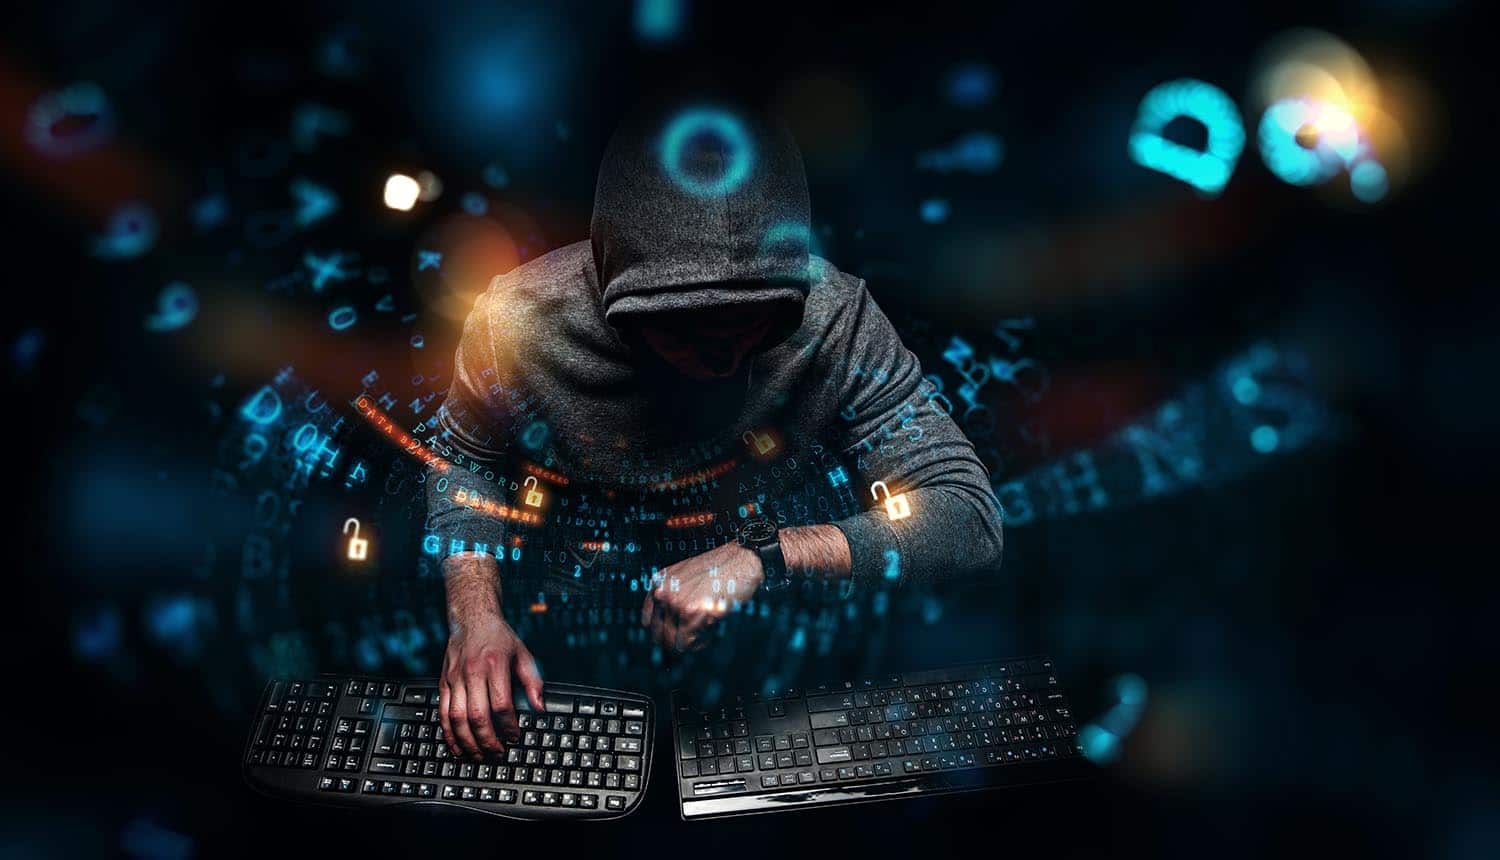 Nation state hacker working on security breach